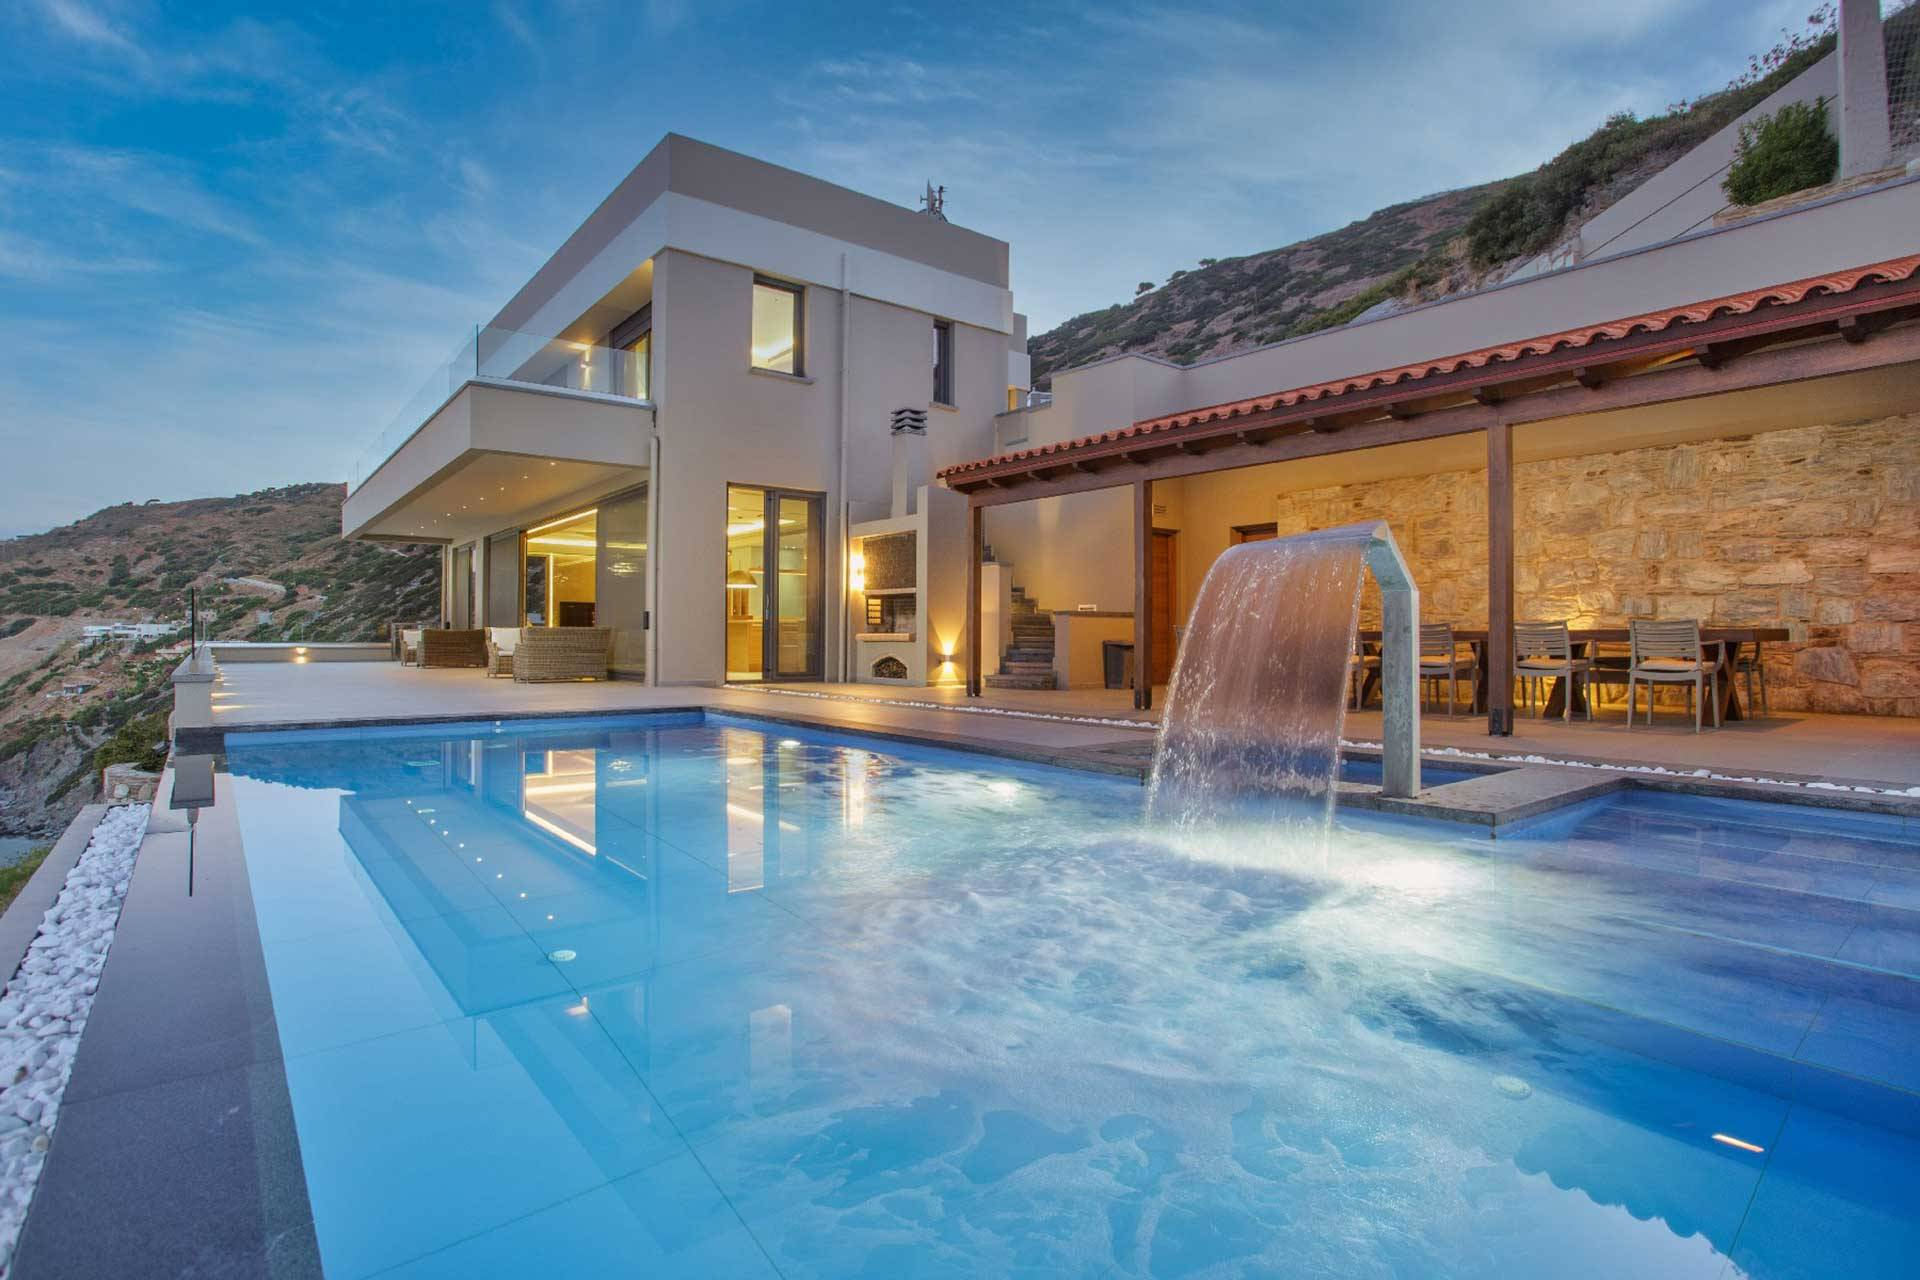 Crete luxury villa Suzette in Heraklion